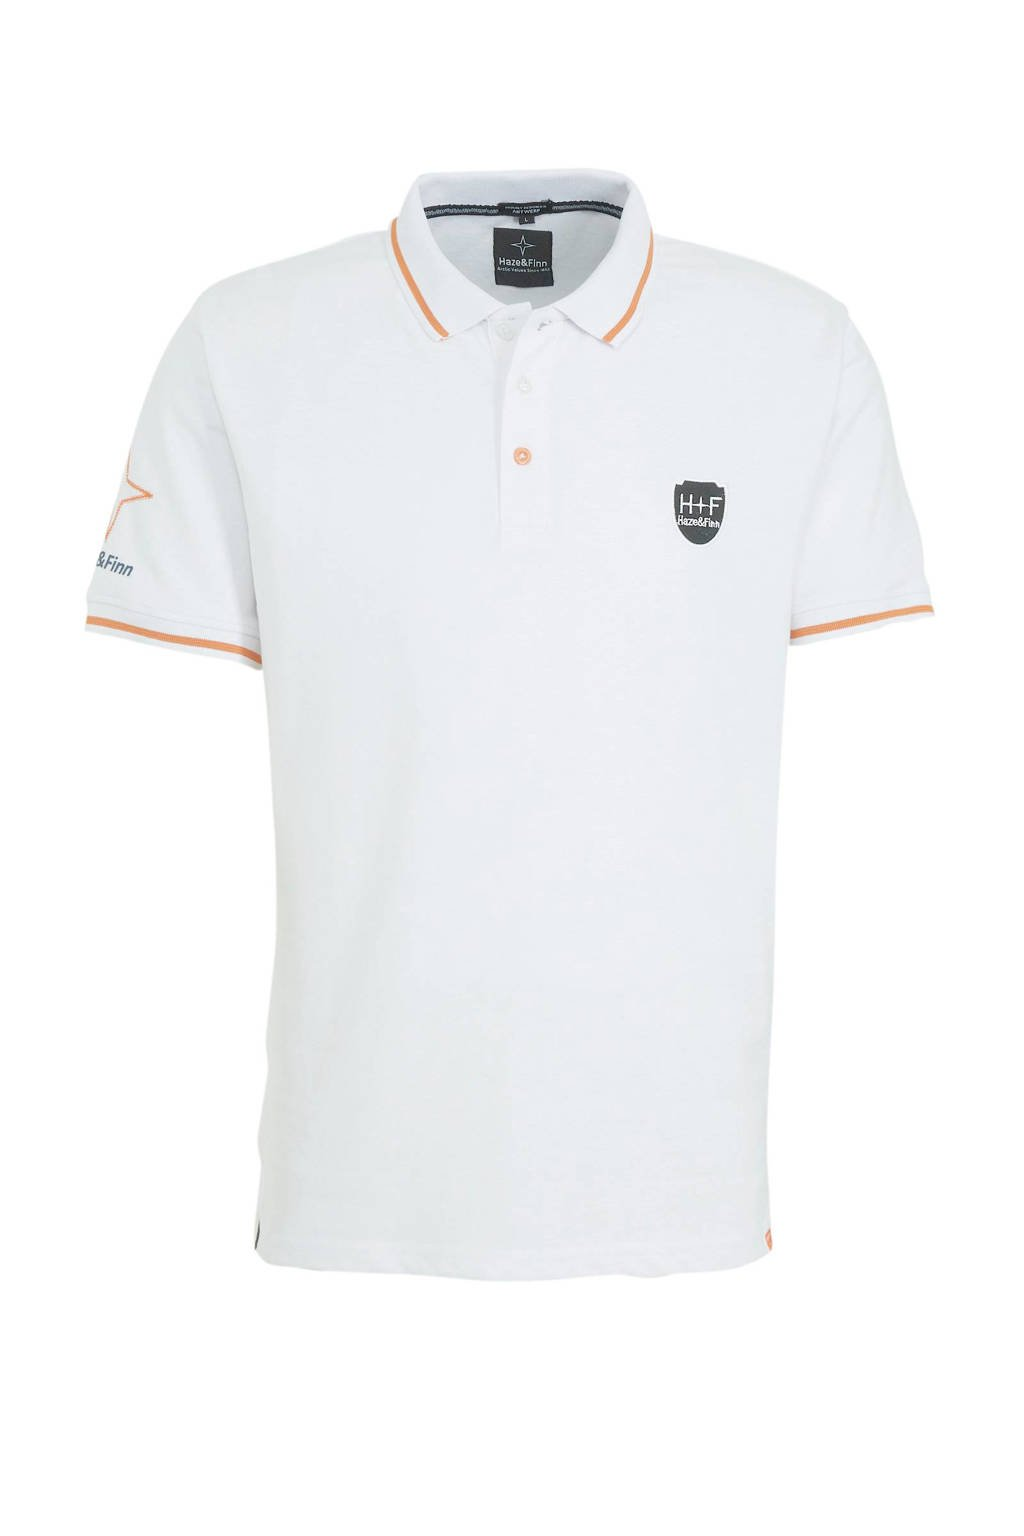 Haze & Finn regular fit polo wit/oranje, Wit/oranje